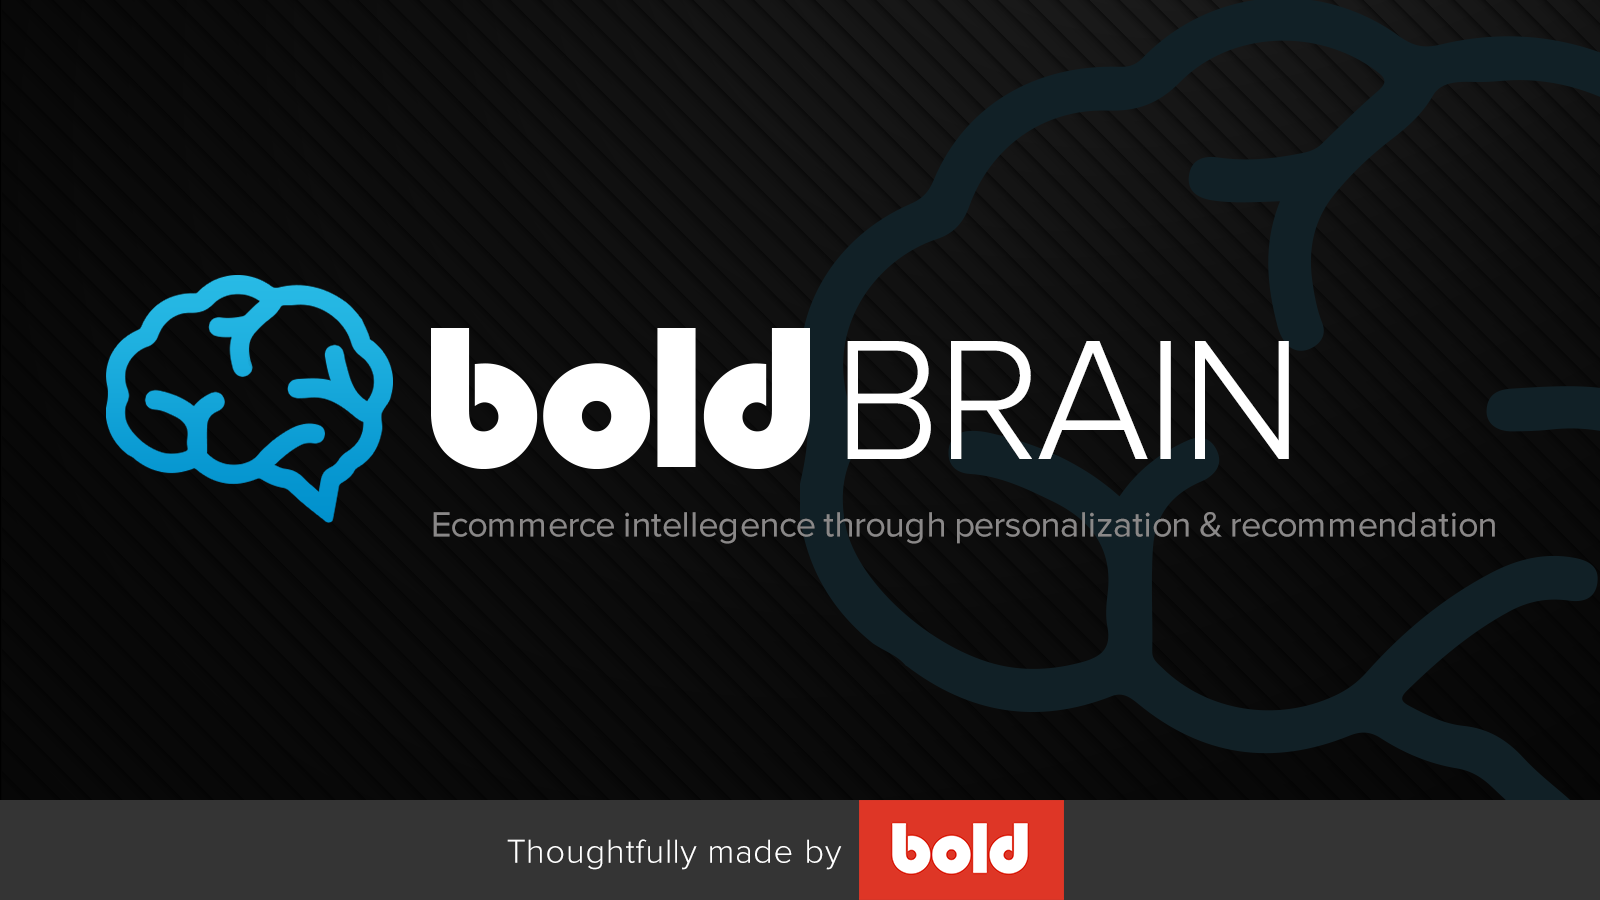 The Bold Brain